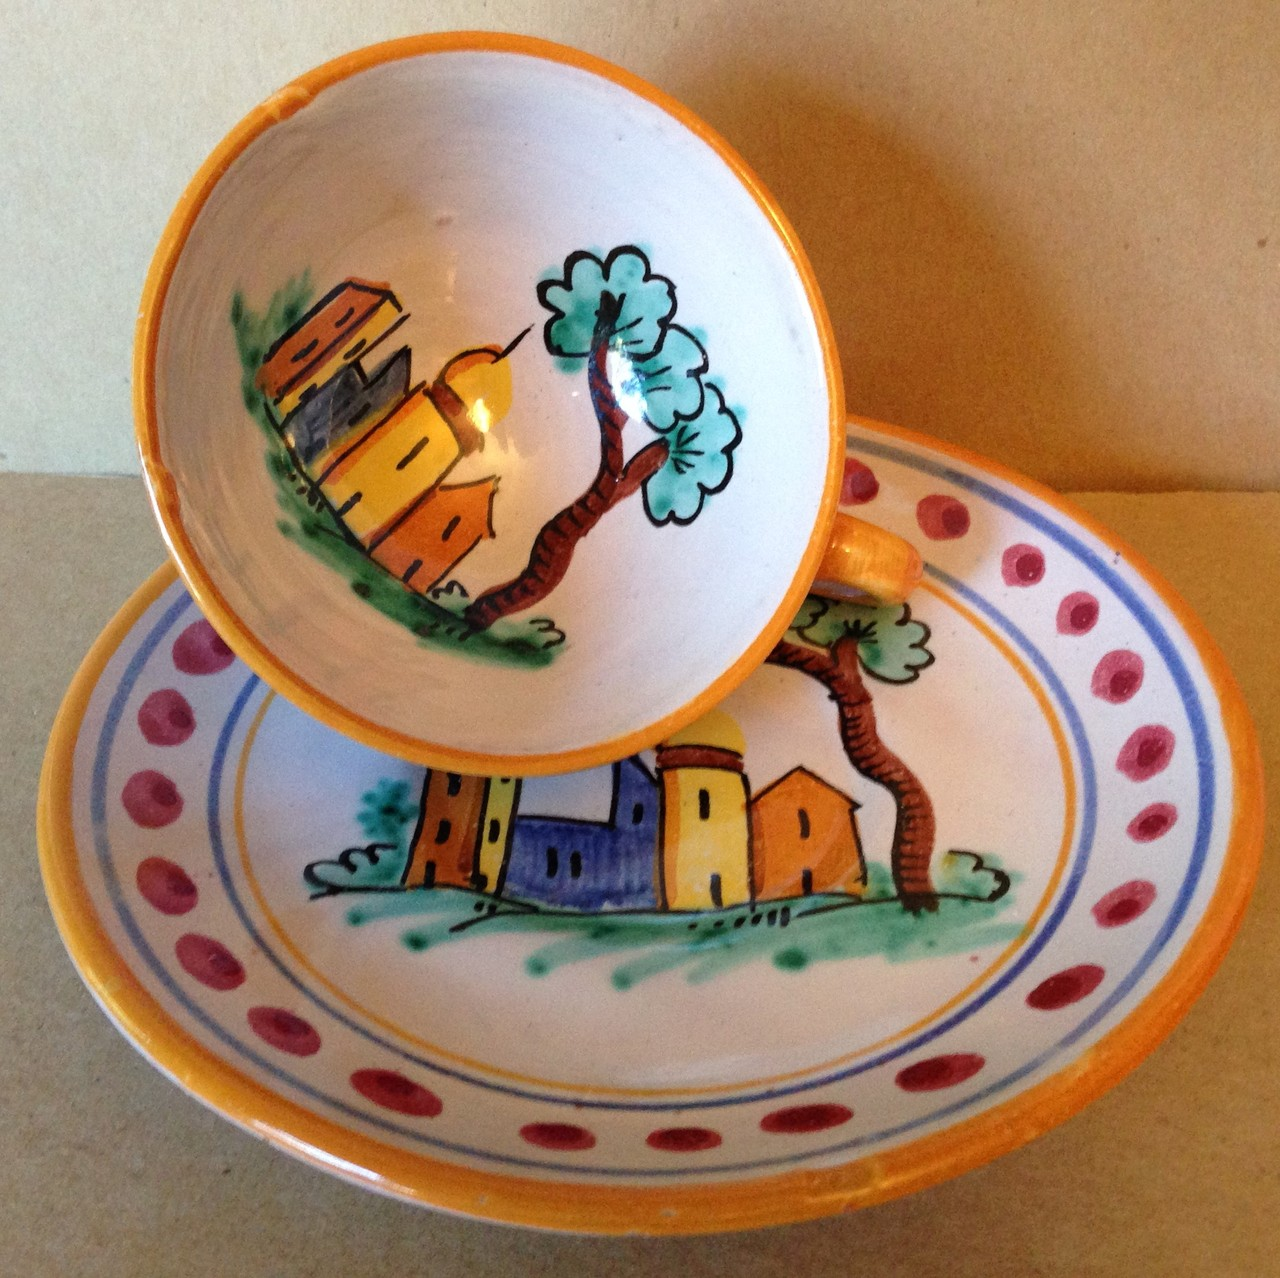 Hand Painted in Italy Warm Italian Village Cup & Saucer Dots Center www.DecorativeDishes.net